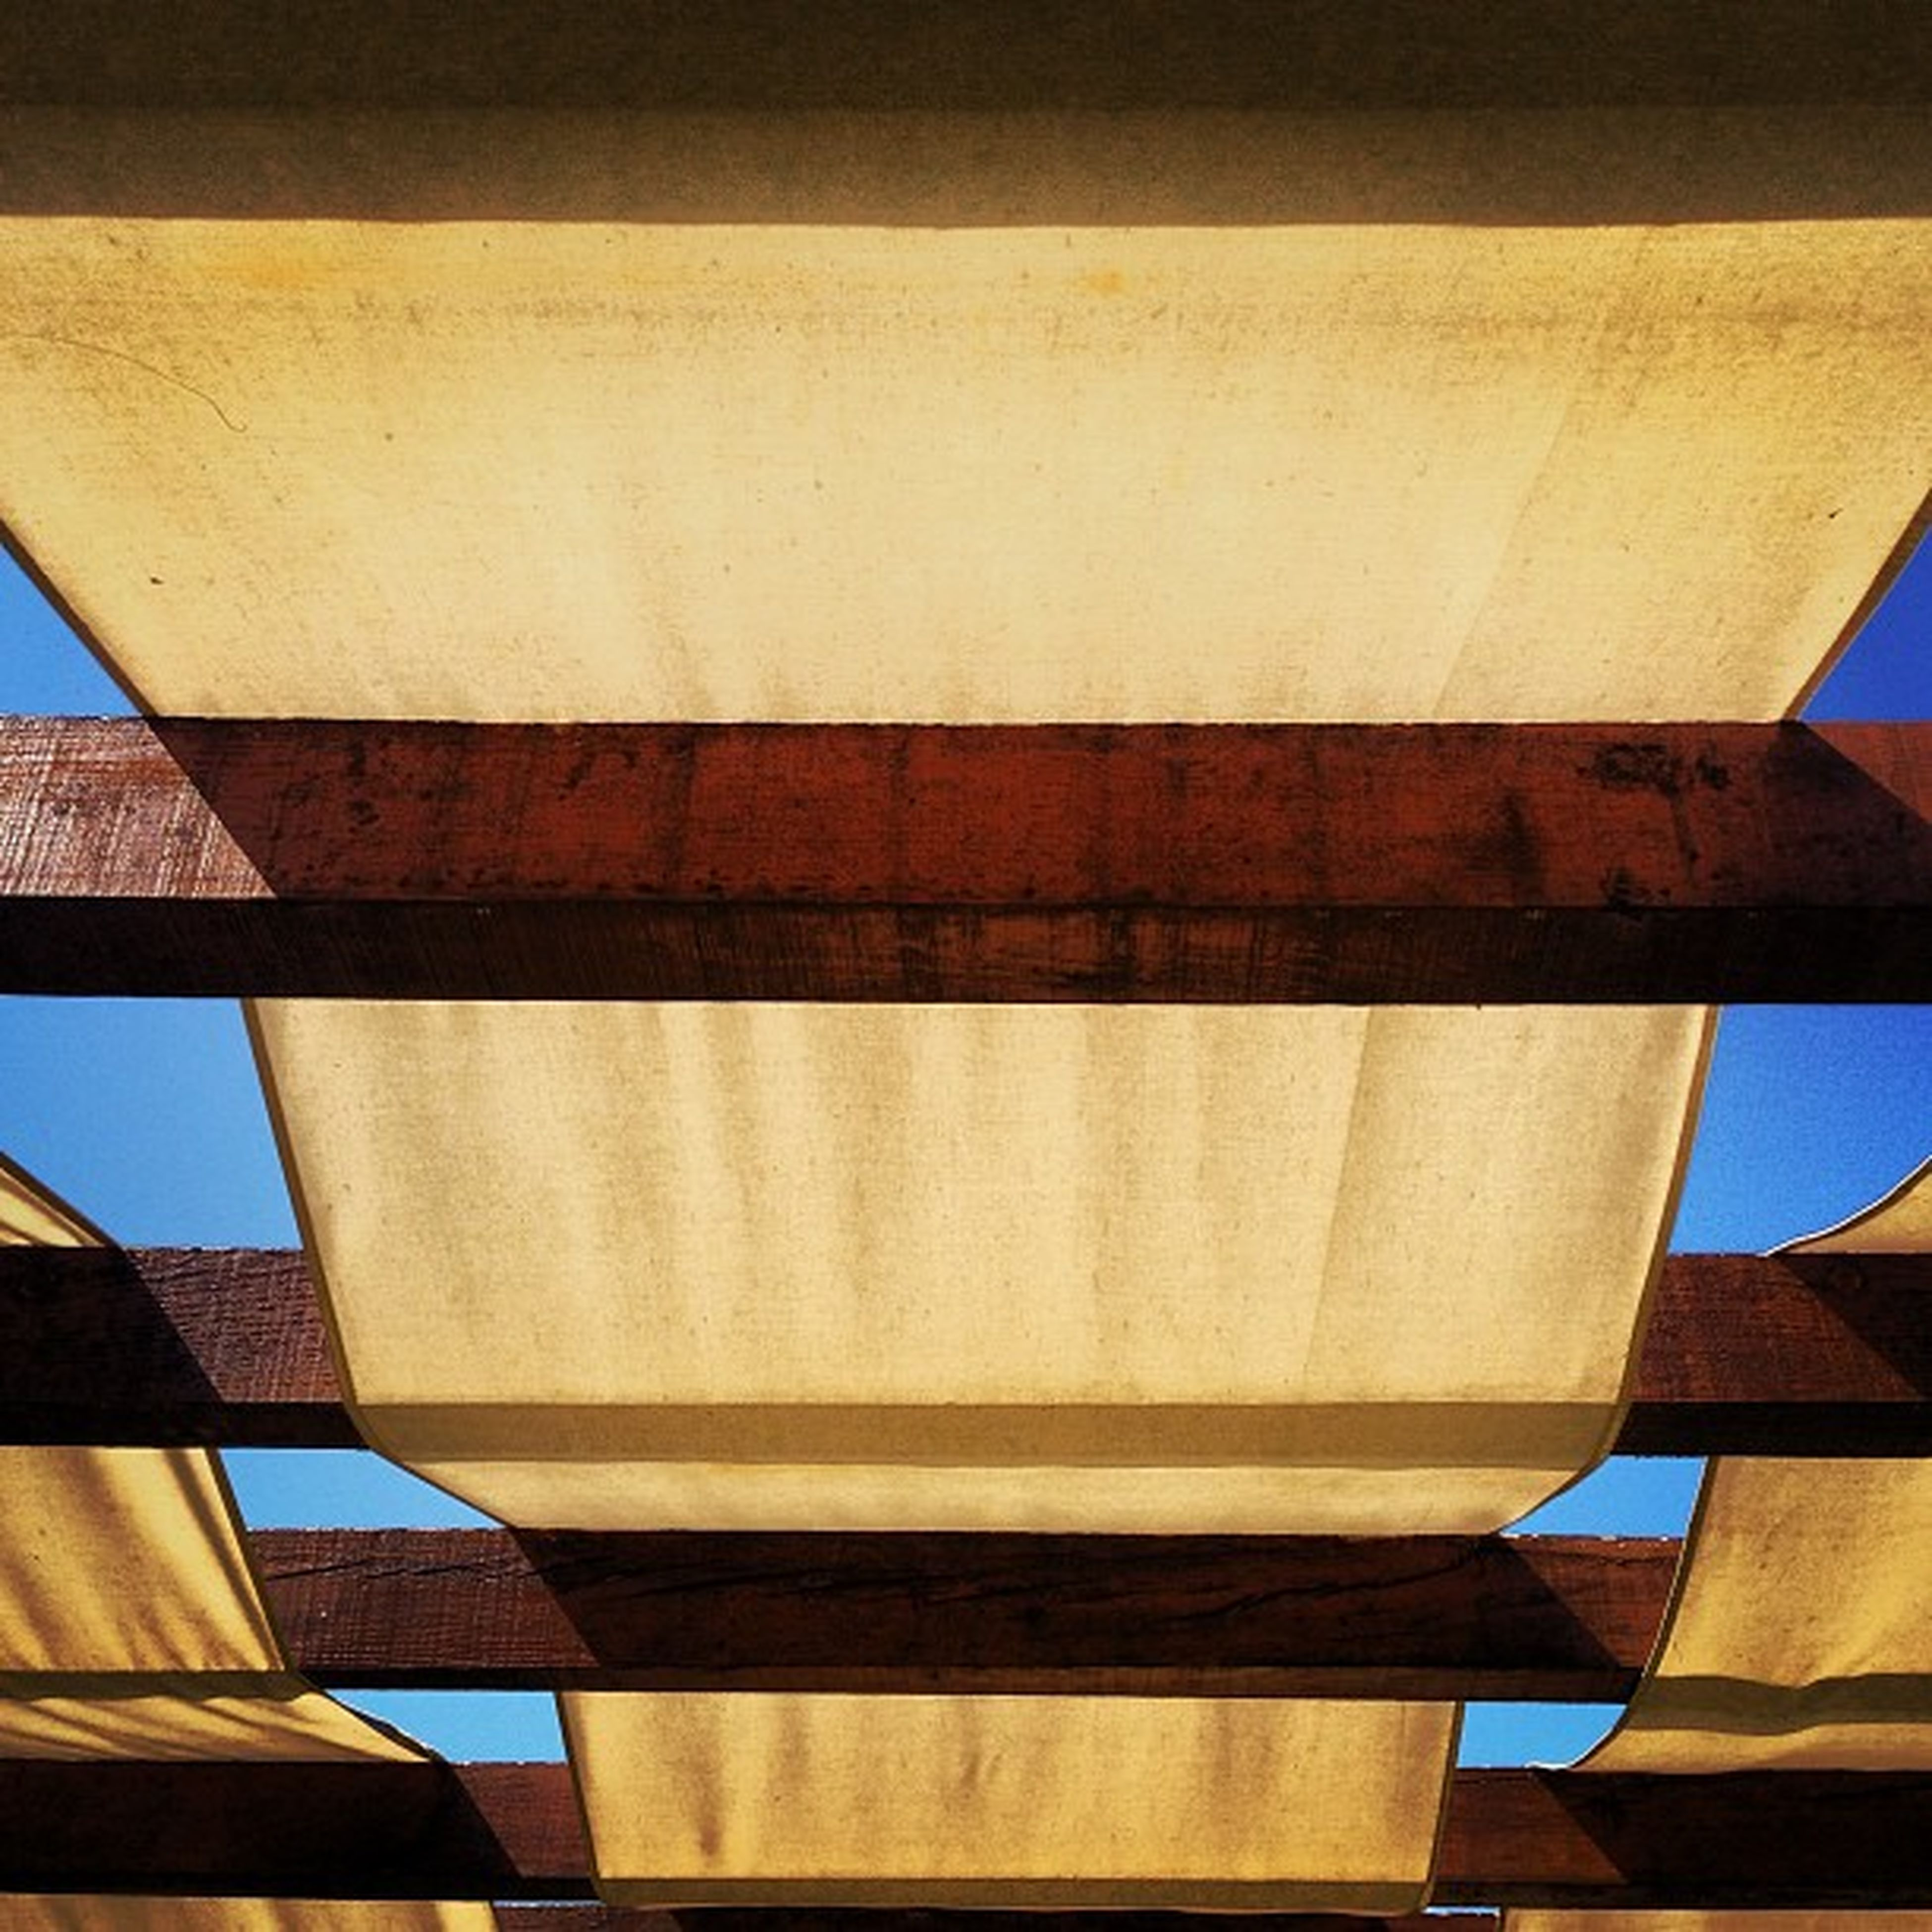 architecture, built structure, low angle view, building exterior, modern, no people, building, indoors, day, sunlight, railing, blue, sky, pattern, part of, city, directly below, window, architectural feature